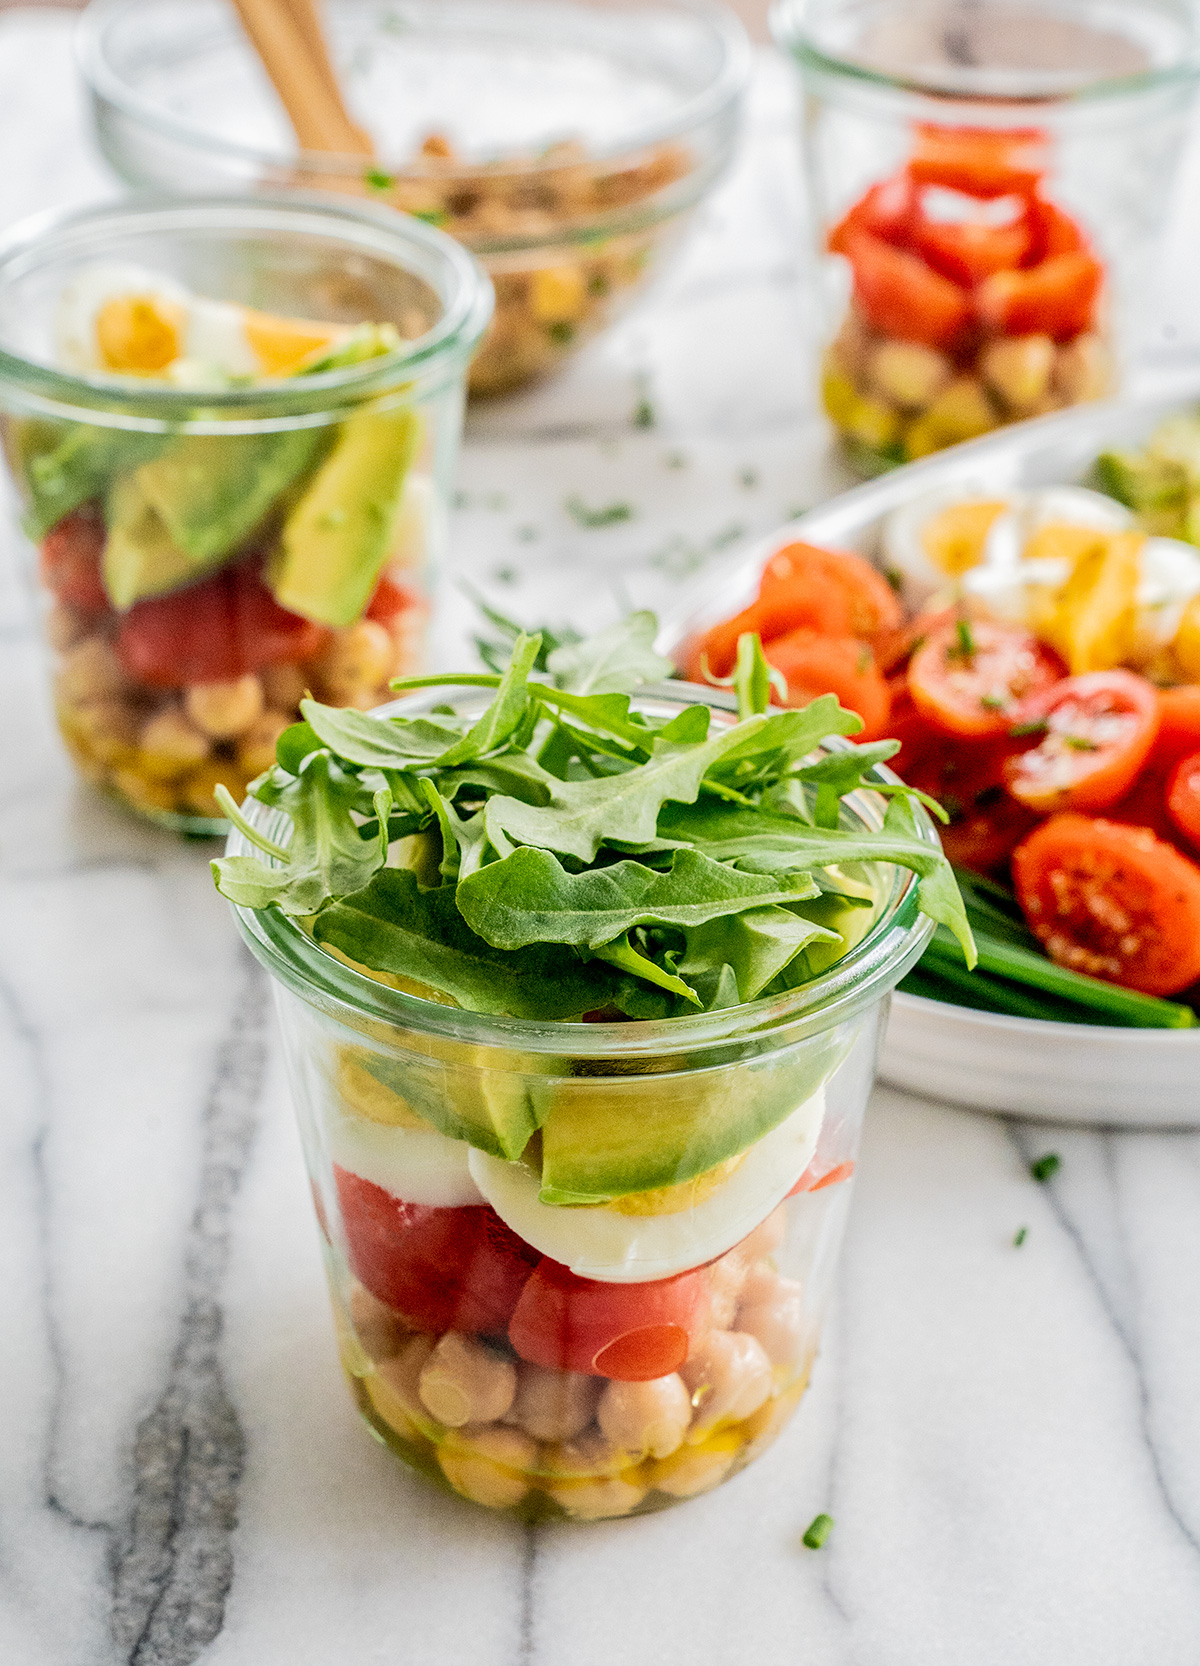 Egg-and-Avocado-Marinated-Chickpea-Pots